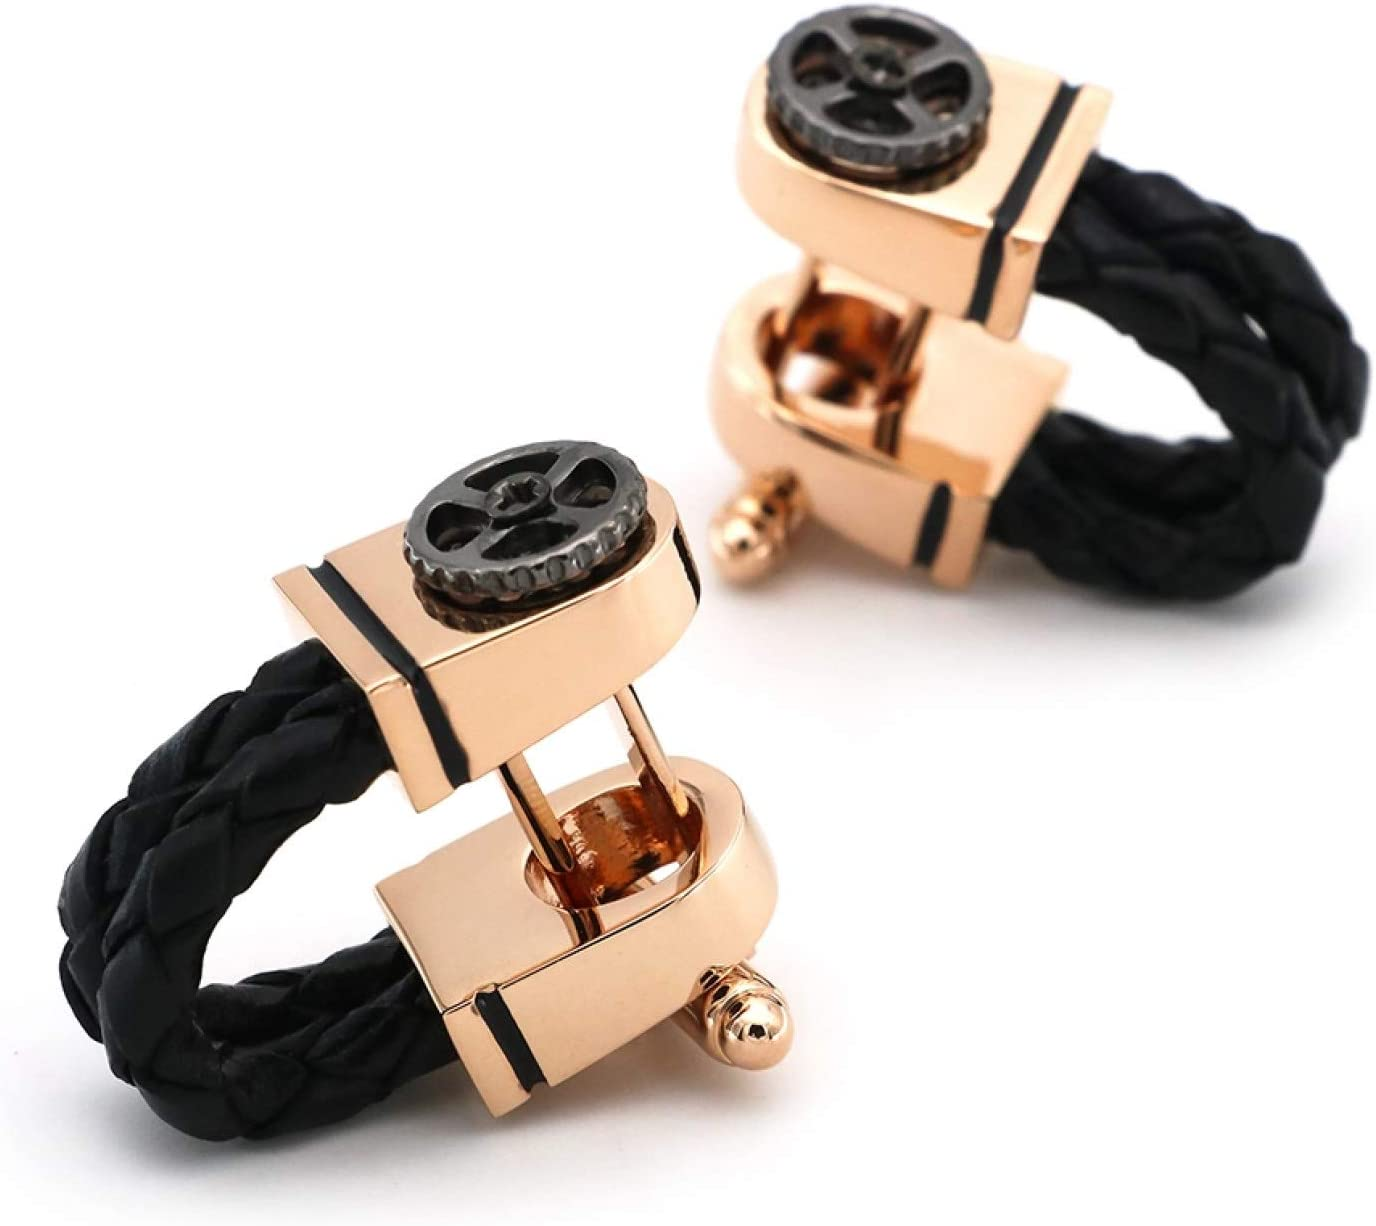 GTHT Men for Cufflinks,Men's Cufflinks Rose Gold Plating Black Leather Chain Design with Gear Quality Business Cuff Links